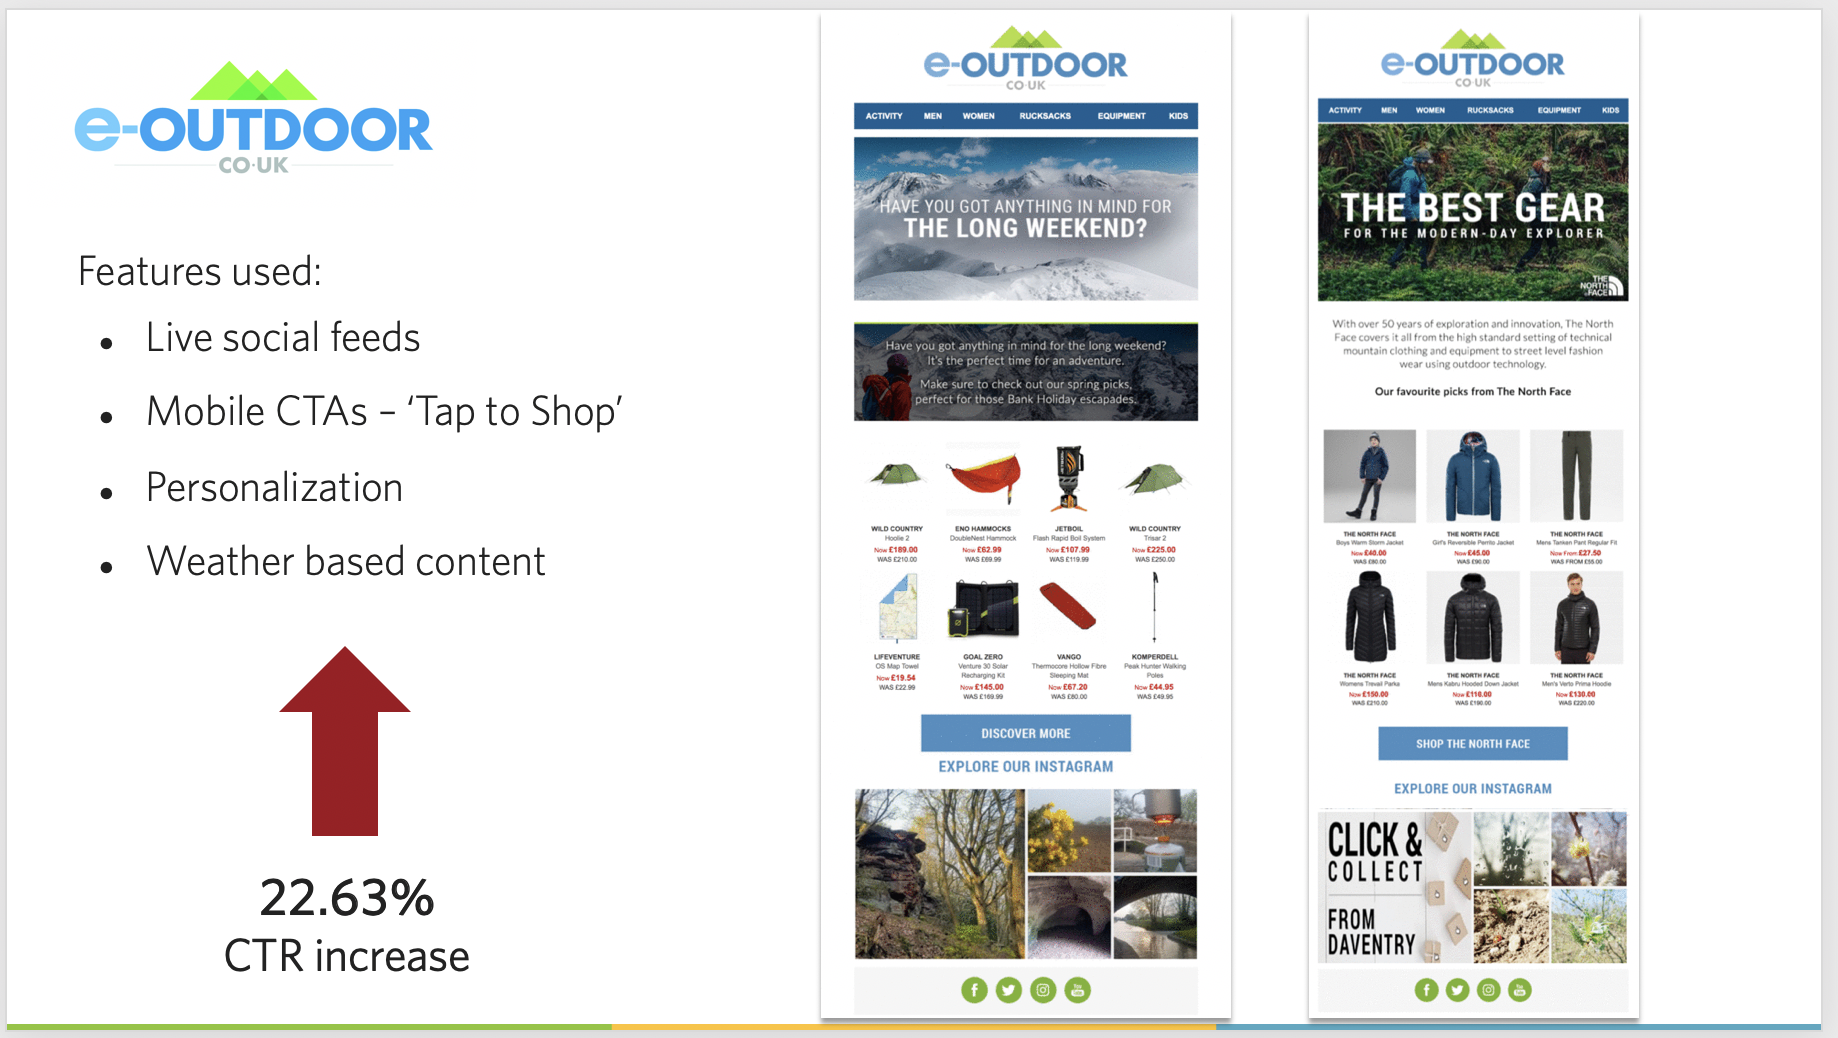 E-outdoor email and results